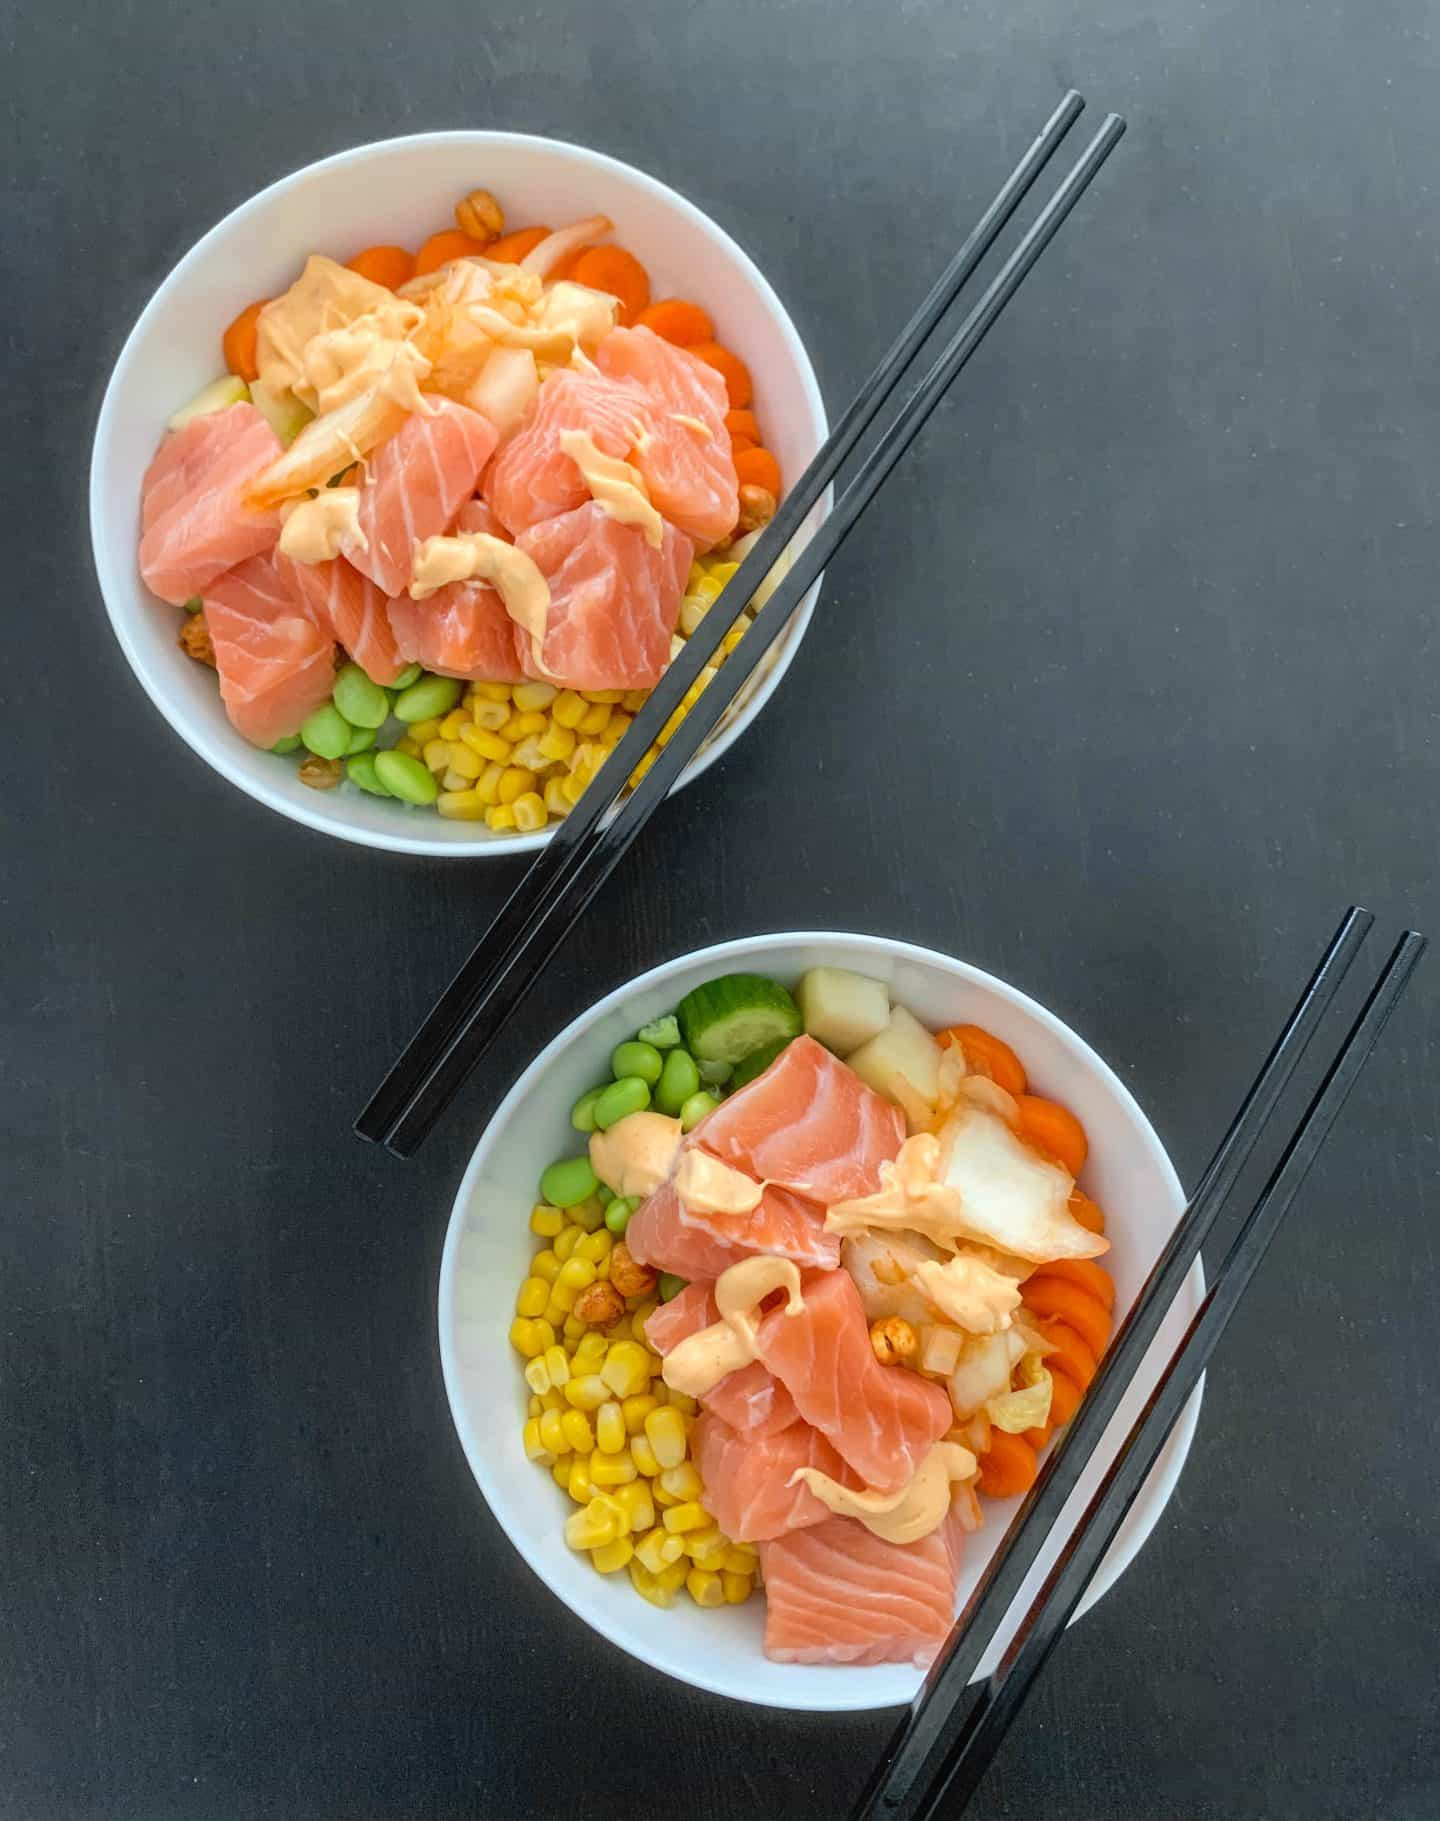 Homemade poké bowls are an easy lunch idea to make at home!